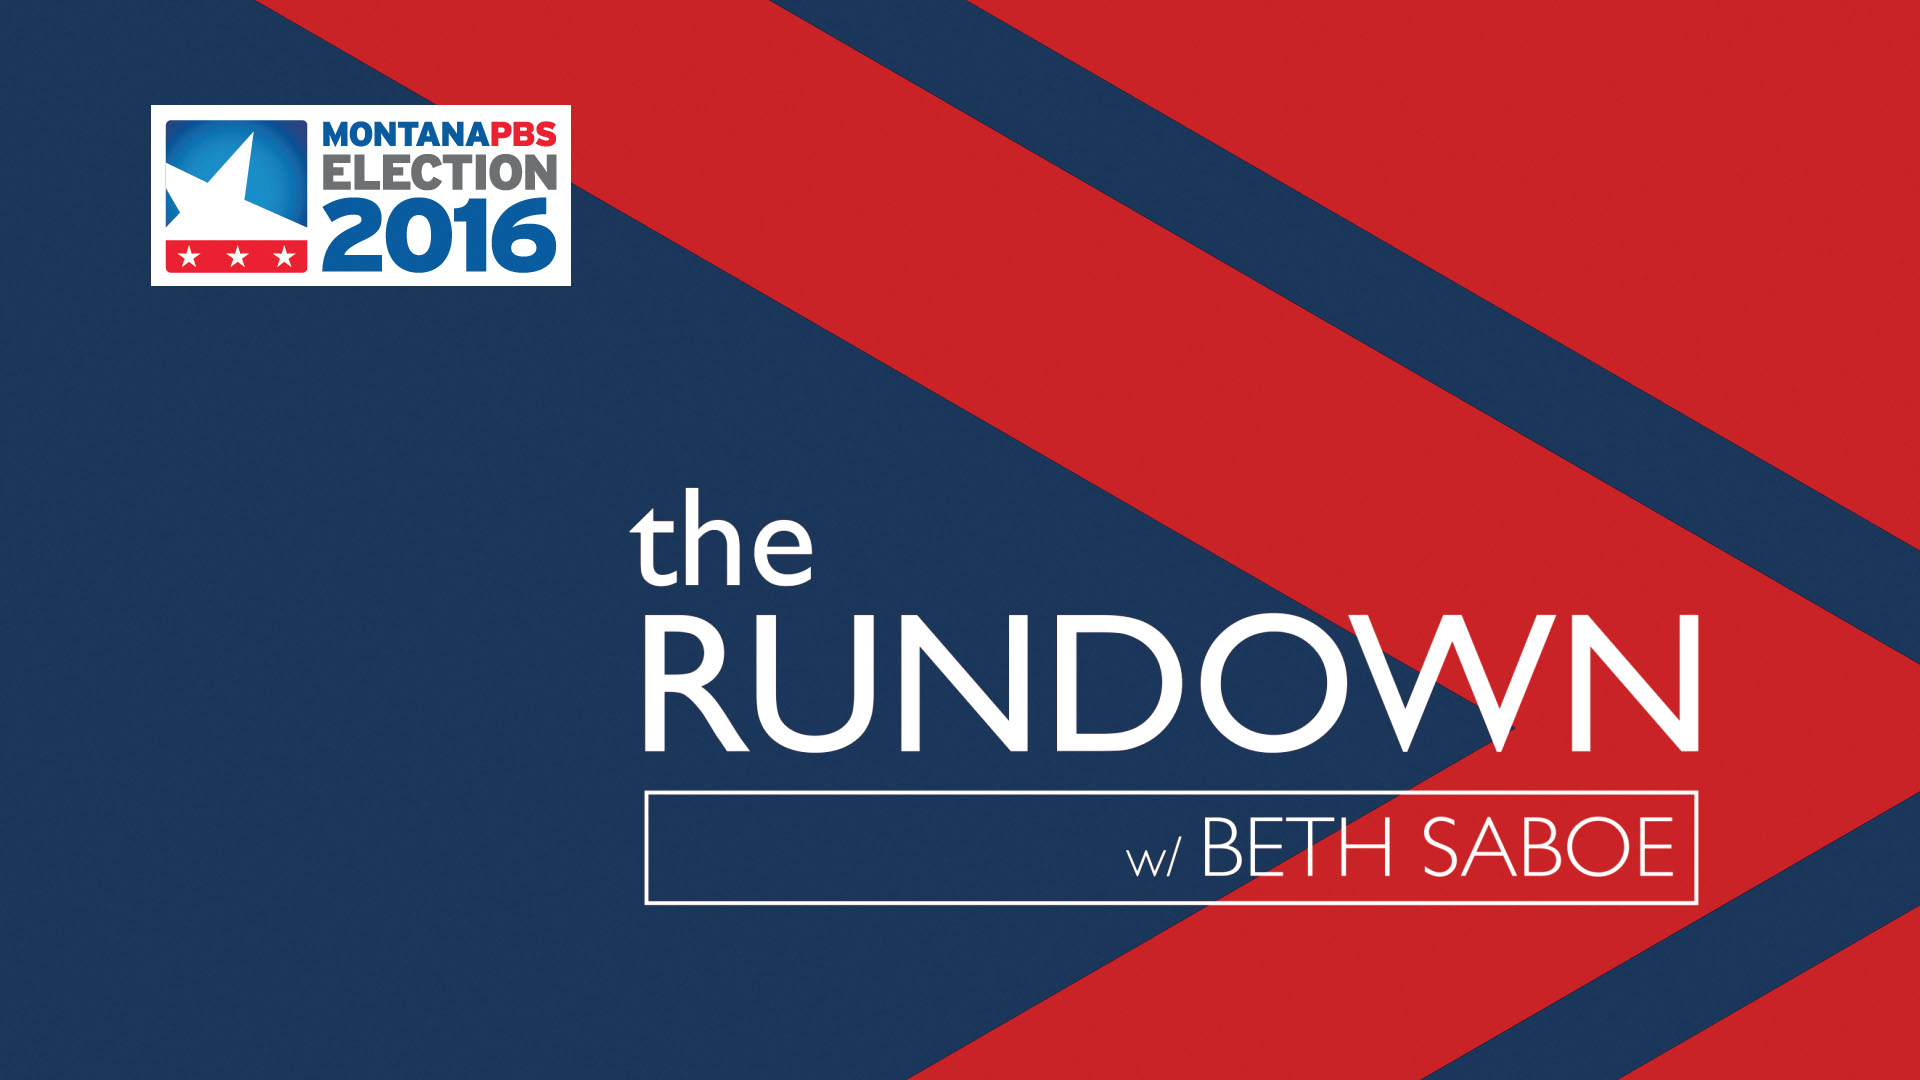 The Rundown with Beth Saboe